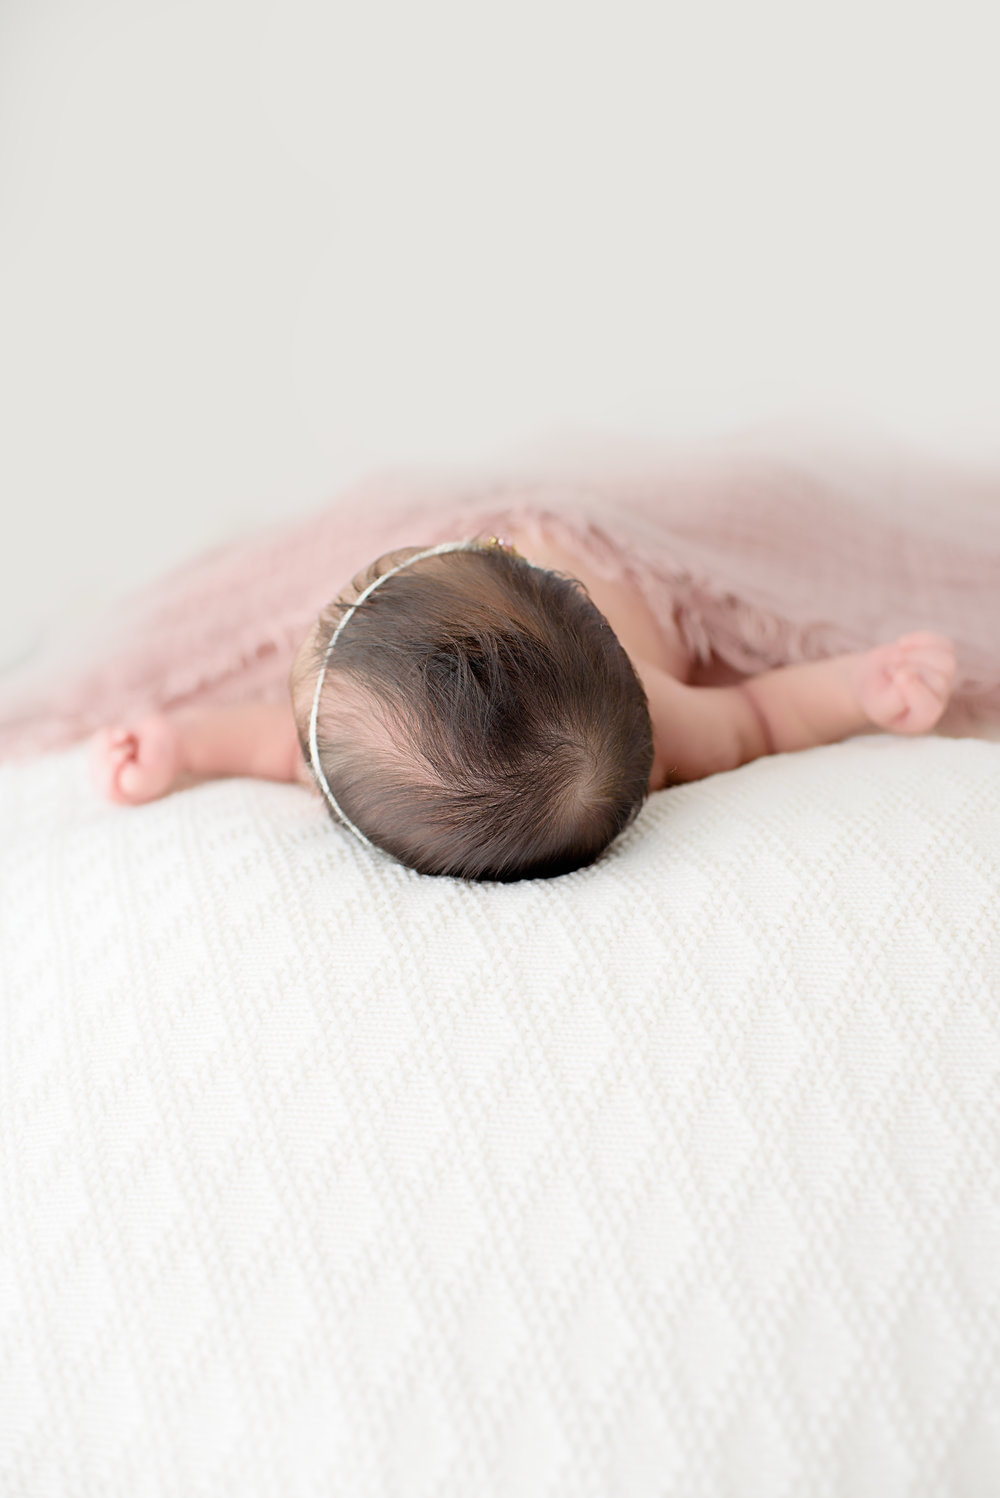 Charleston-Newborn-Photographer-Following-Seas-Photography-8841 copy.jpg